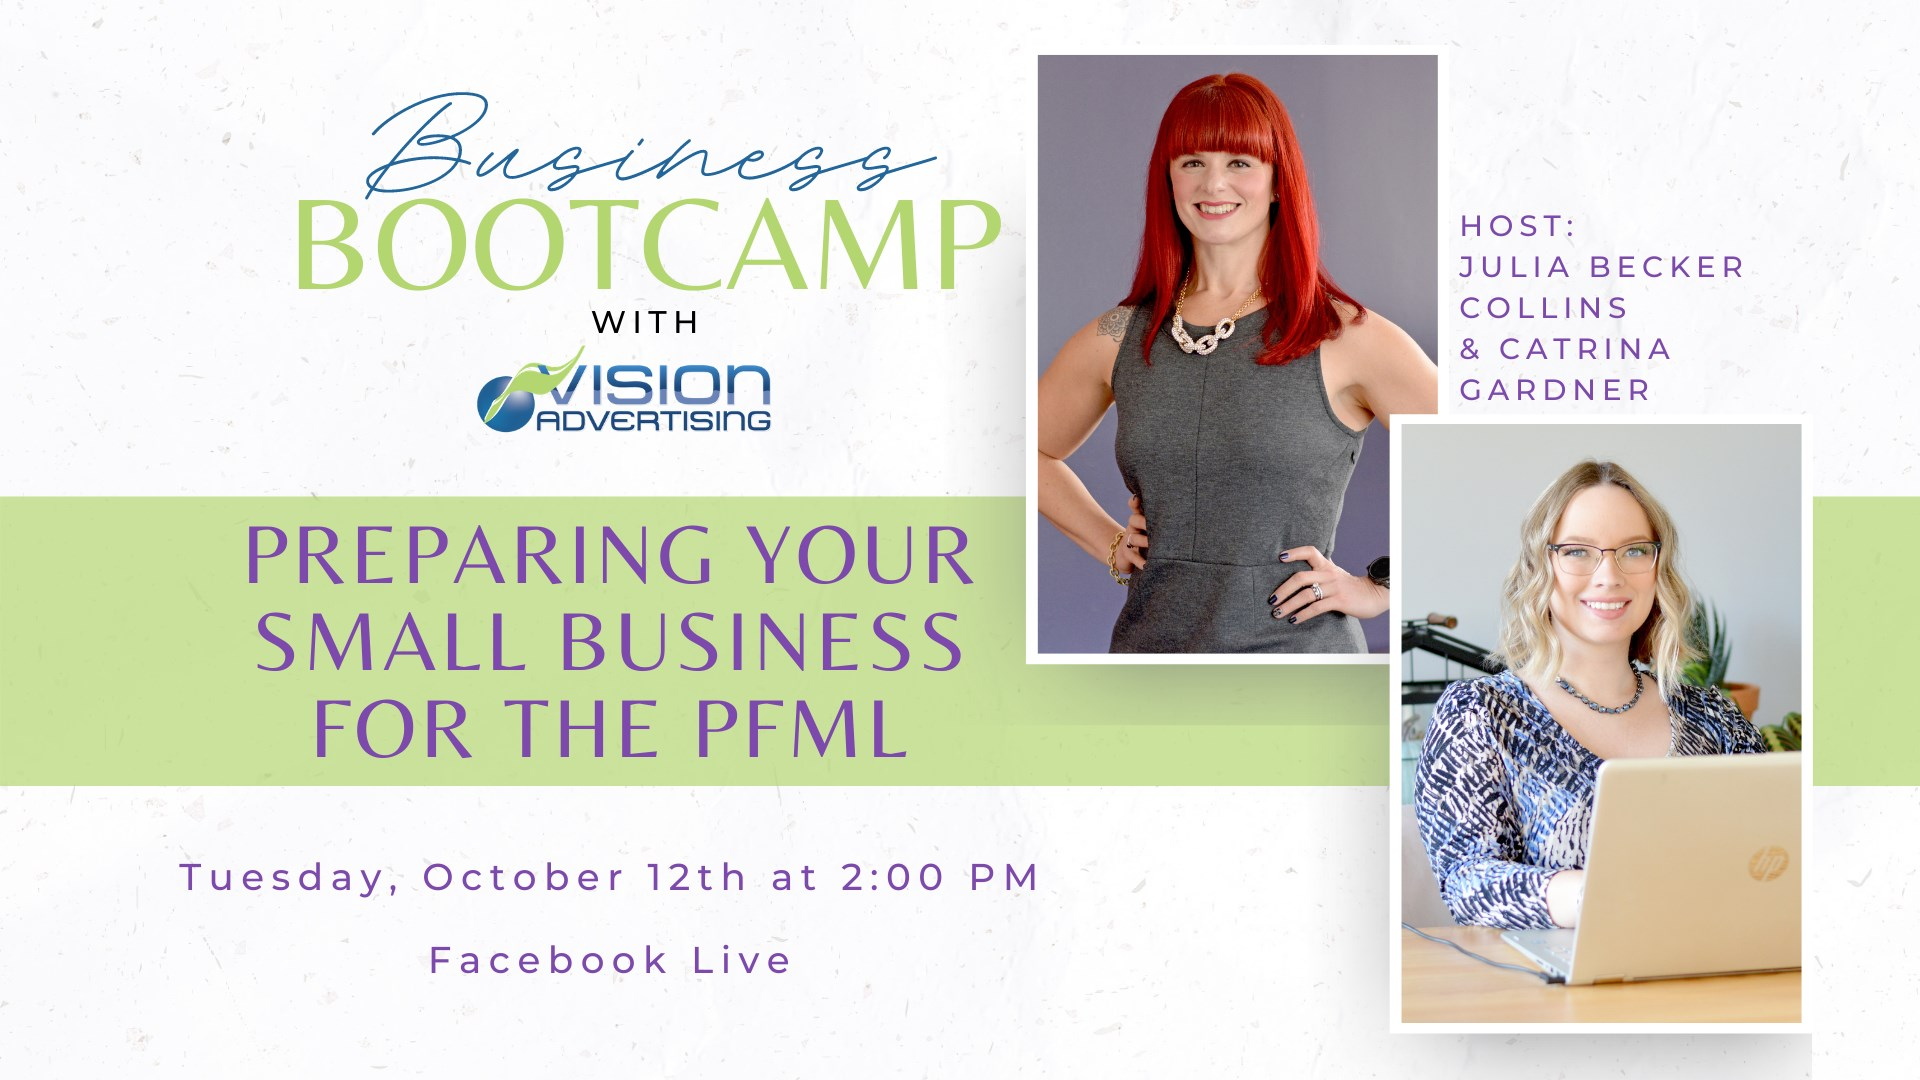 Preparing Your Small Buisness for the PFML with Julia Becker Collins and Catrina Gardner.